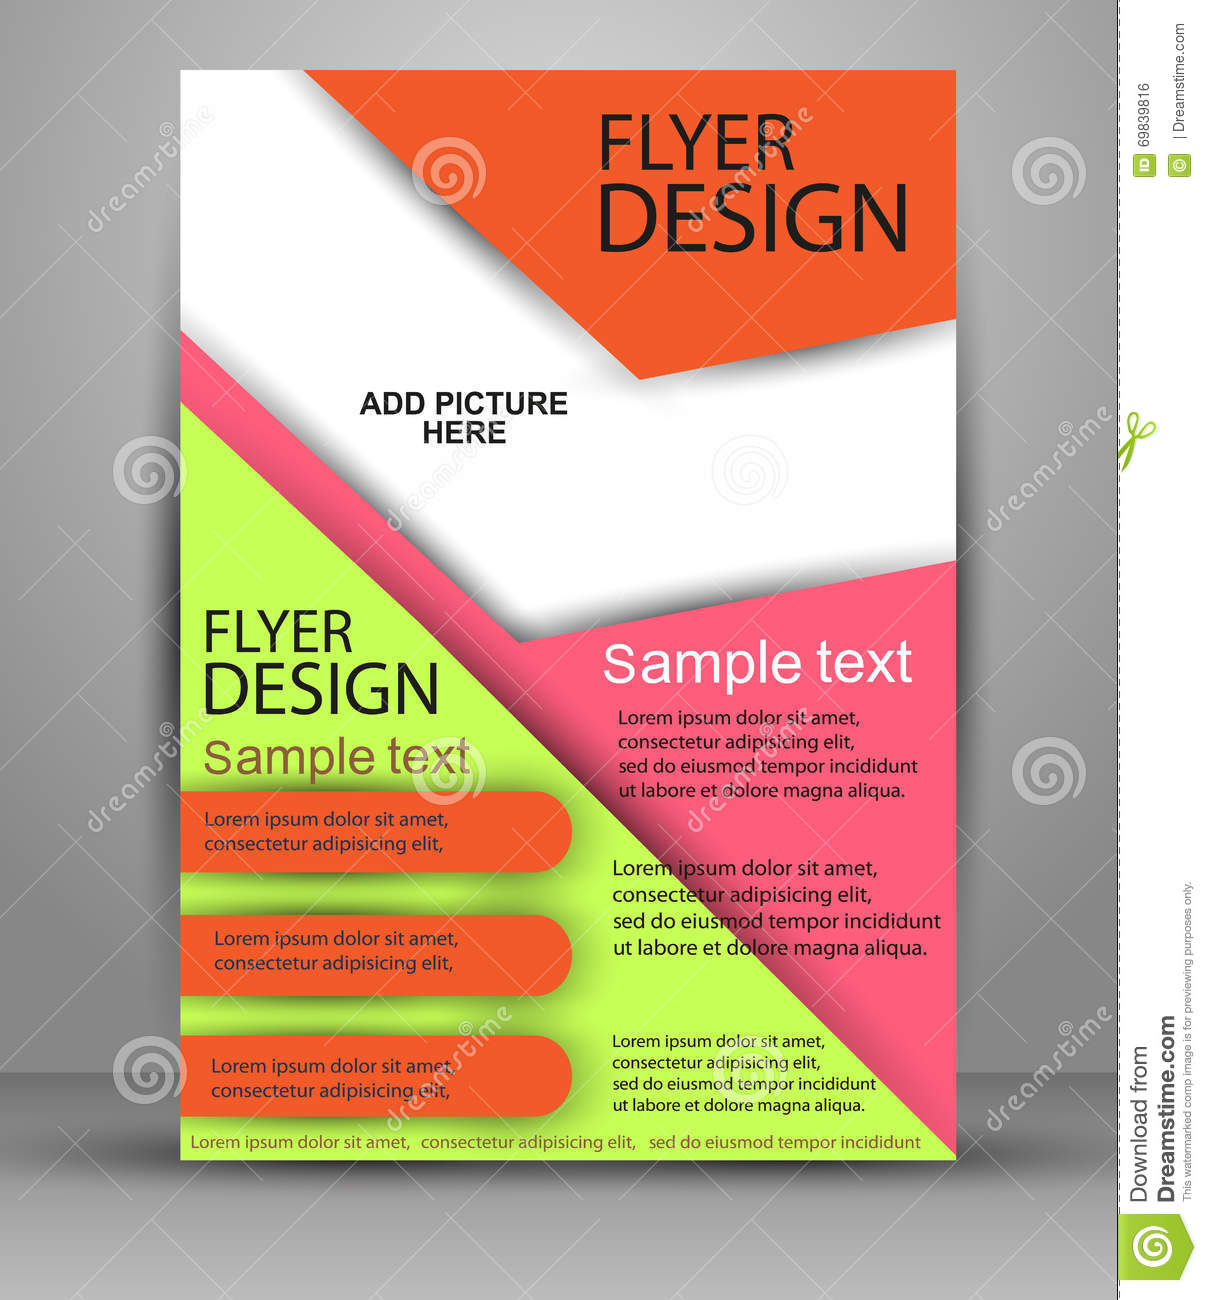 Free Custom Flyer Templates Antaexpocoaching